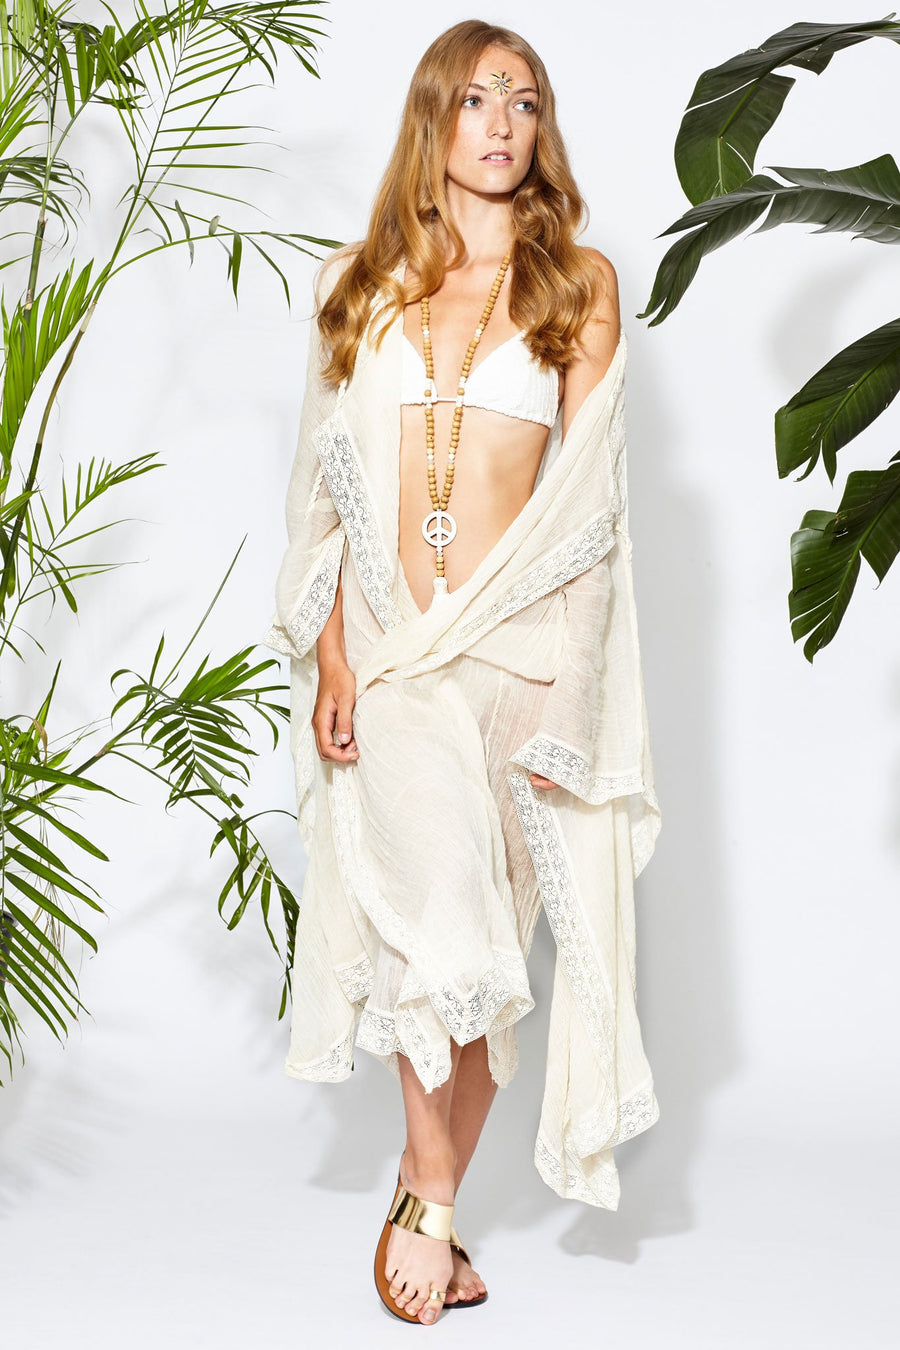 This is a photo of a woman wearing a natural colored cotton guaze coverup that is worn open and floor length. There is lace trim on the hems and rope tassels hanging from the top where the piece can be tied closed. She styles it here over a white bikini top with gold sandals and a wood beaded necklace with peace sign pendant.